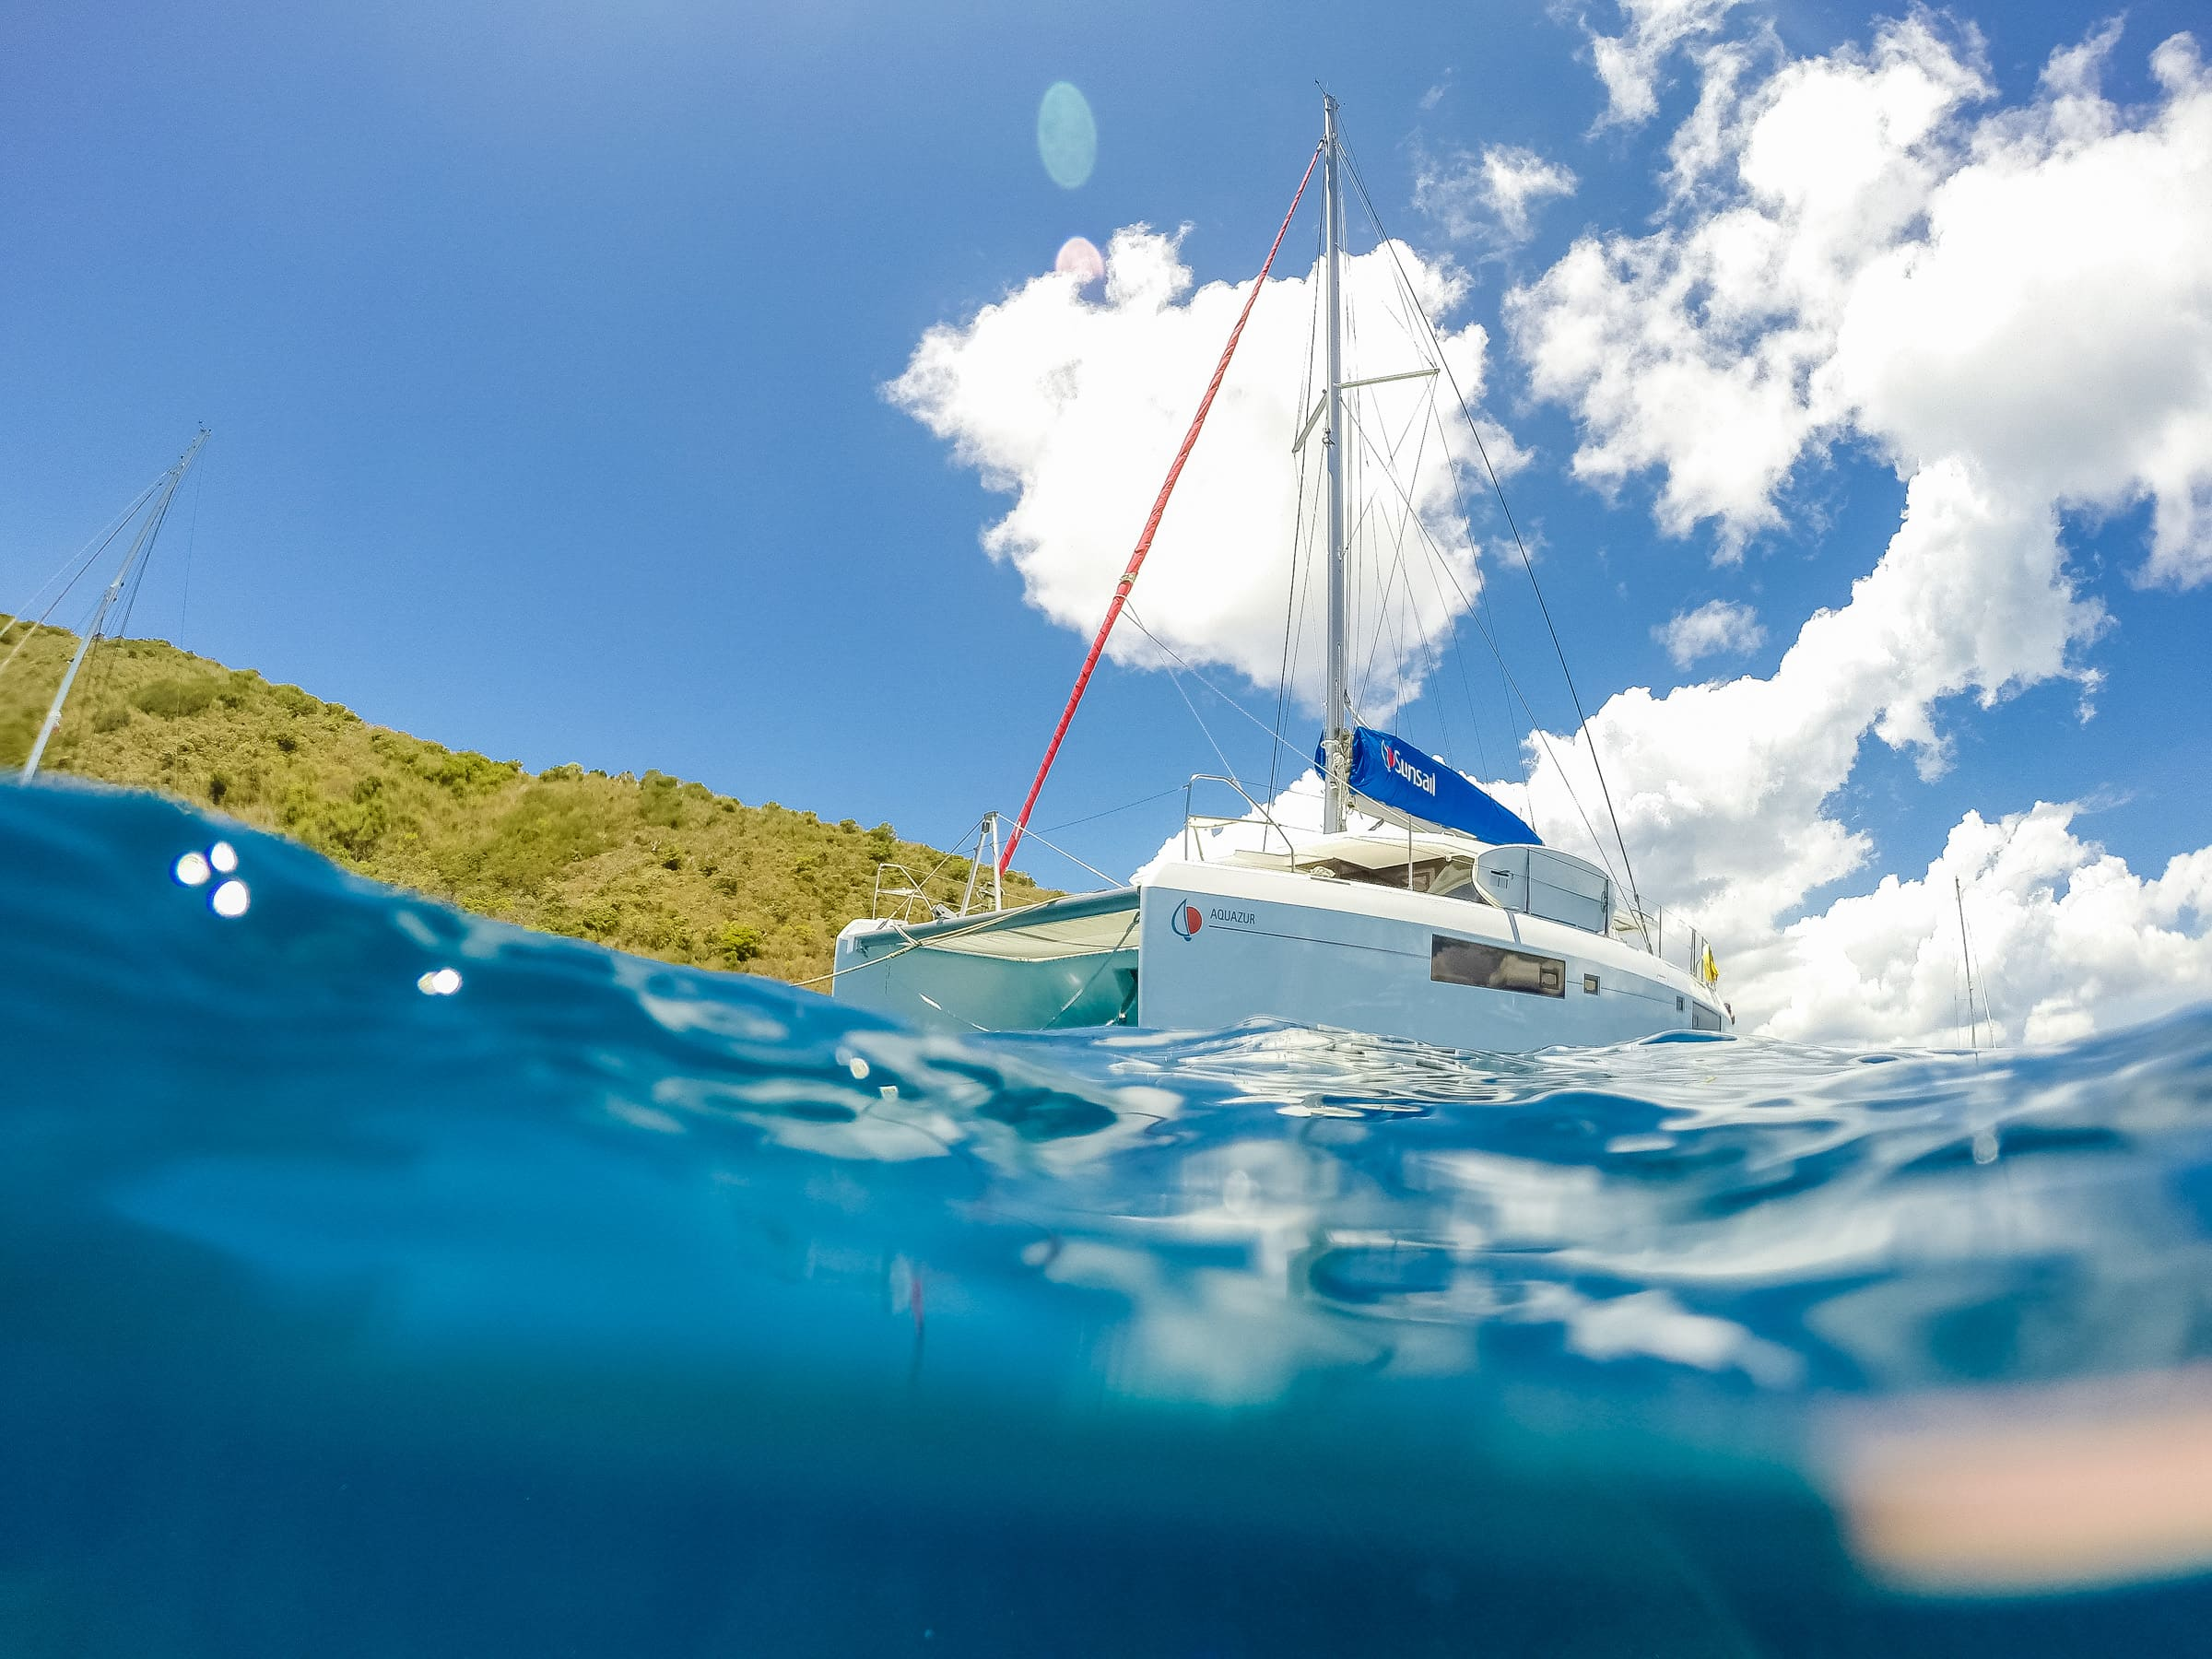 Sailing British Virgin Islands by Patrick Bennett